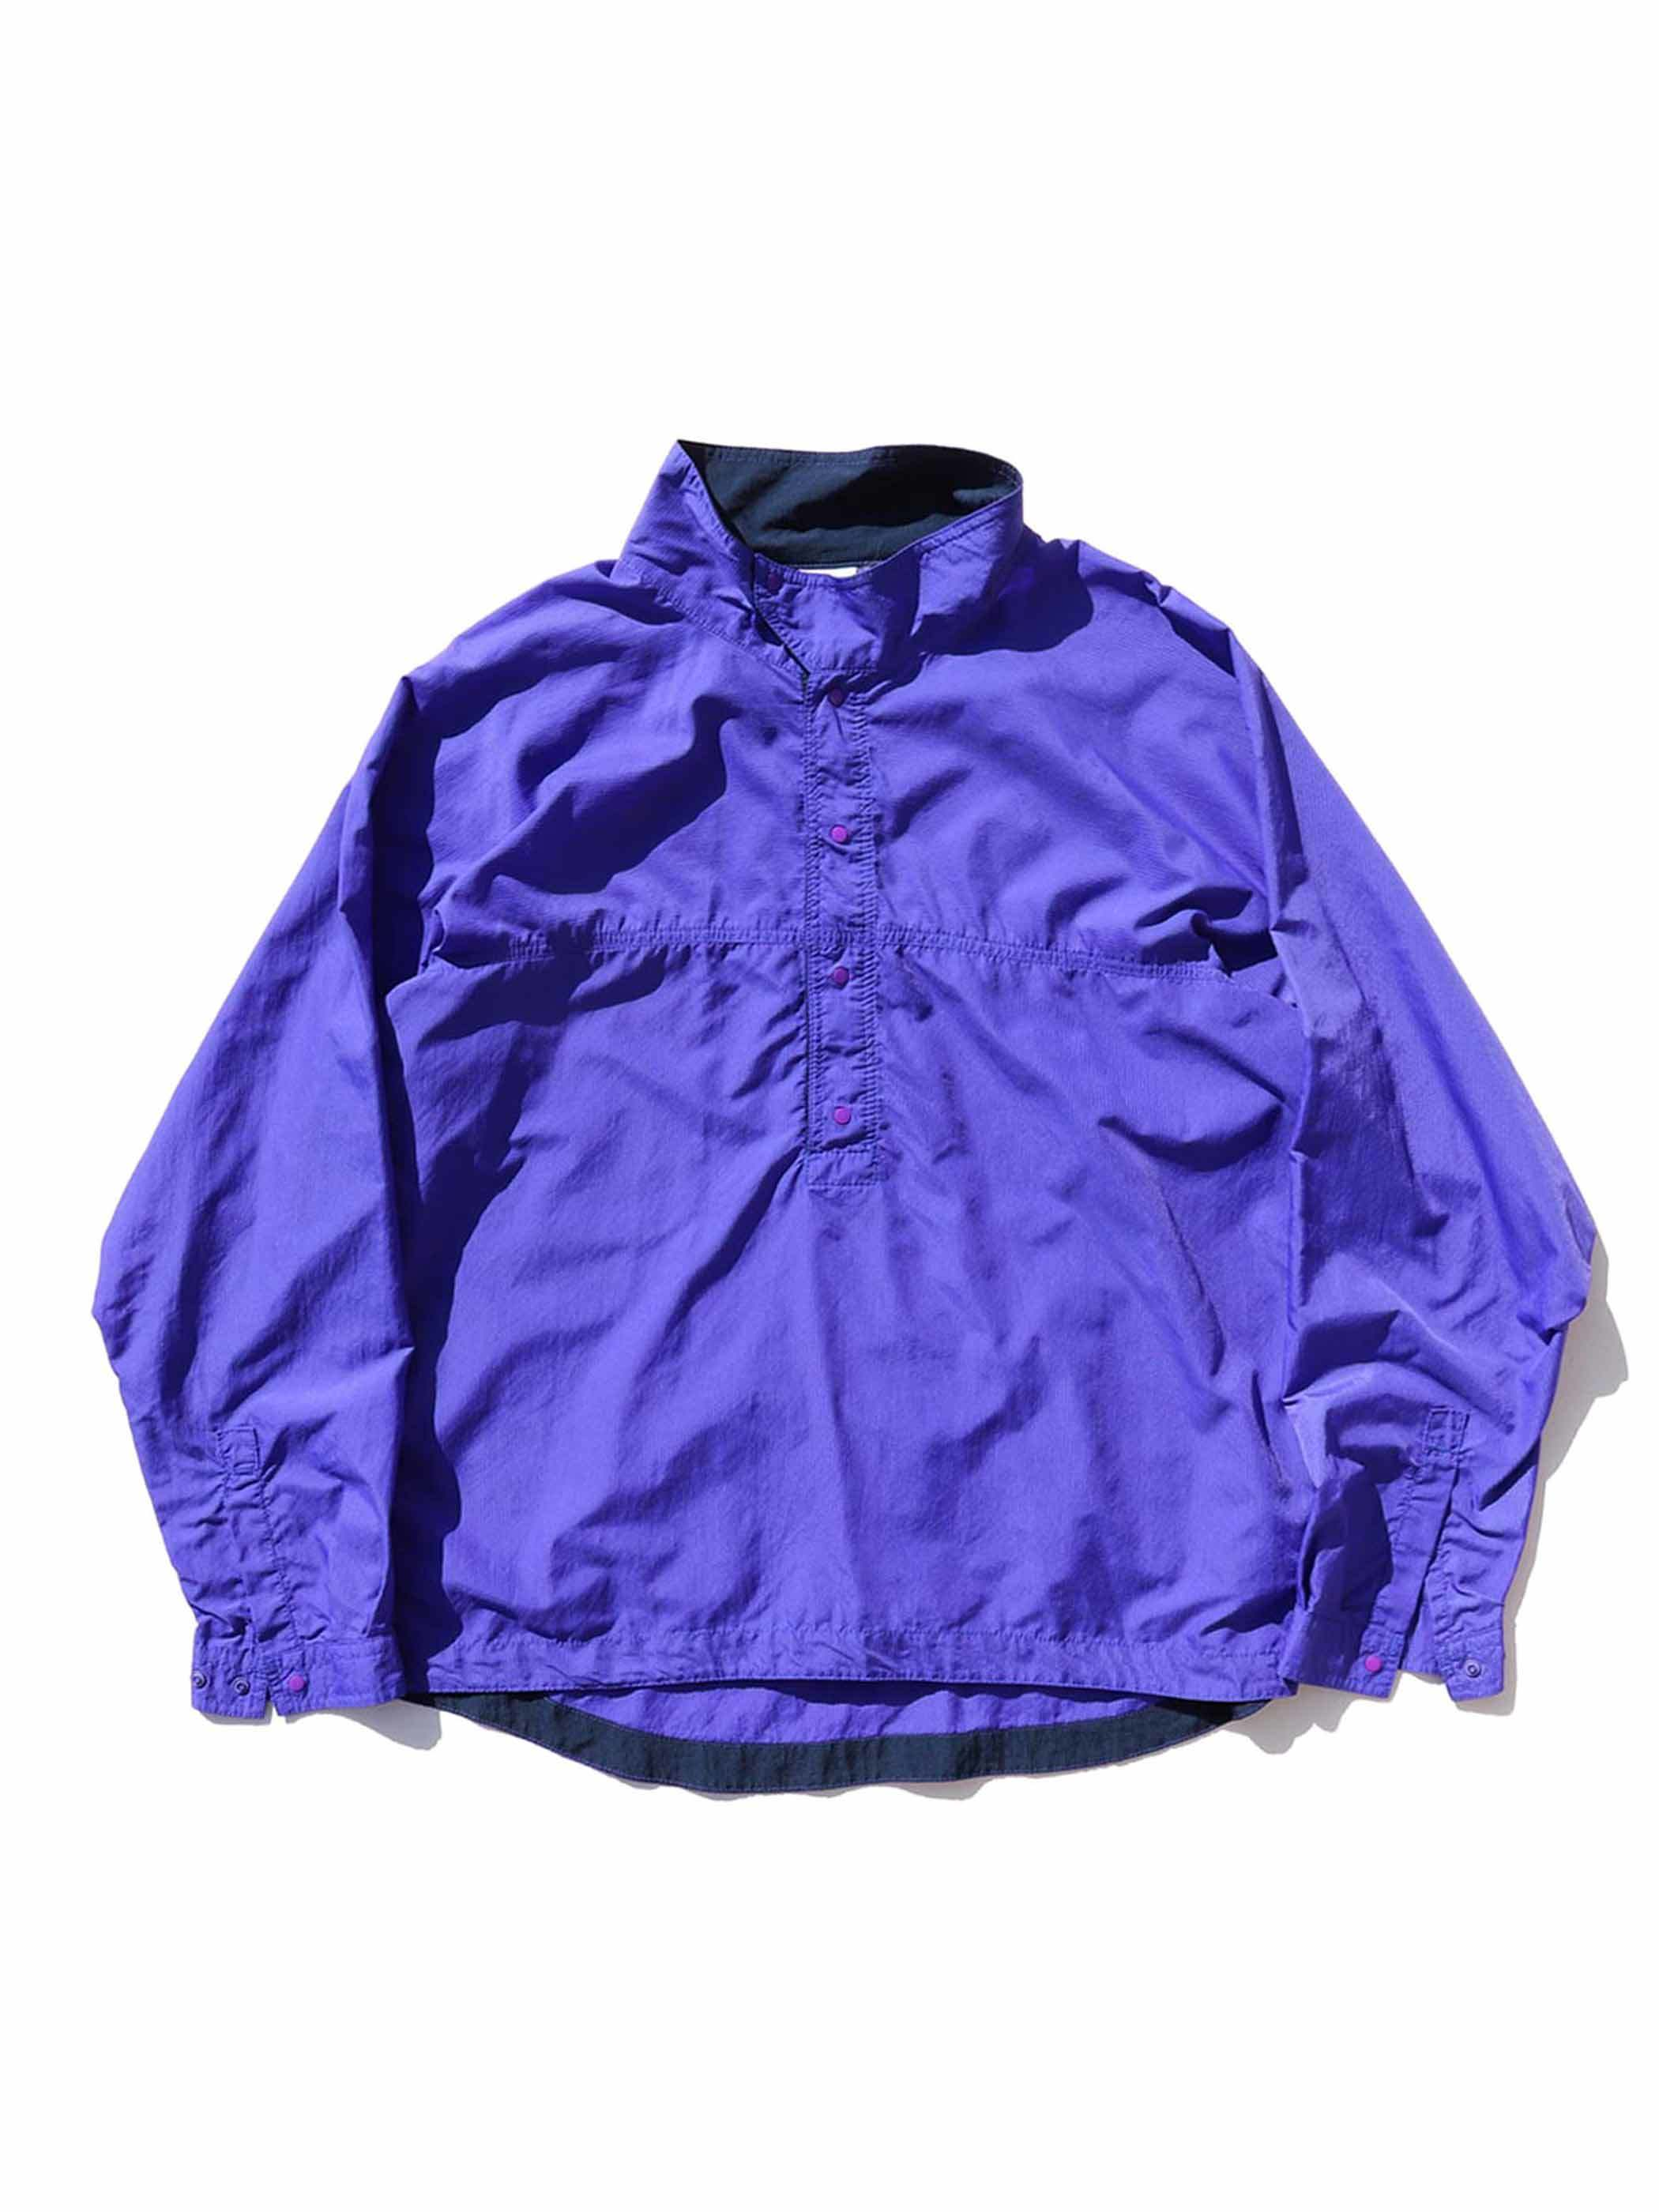 90's EARLY WINTERS Ripstop Nylon Pullover Jacket [M]